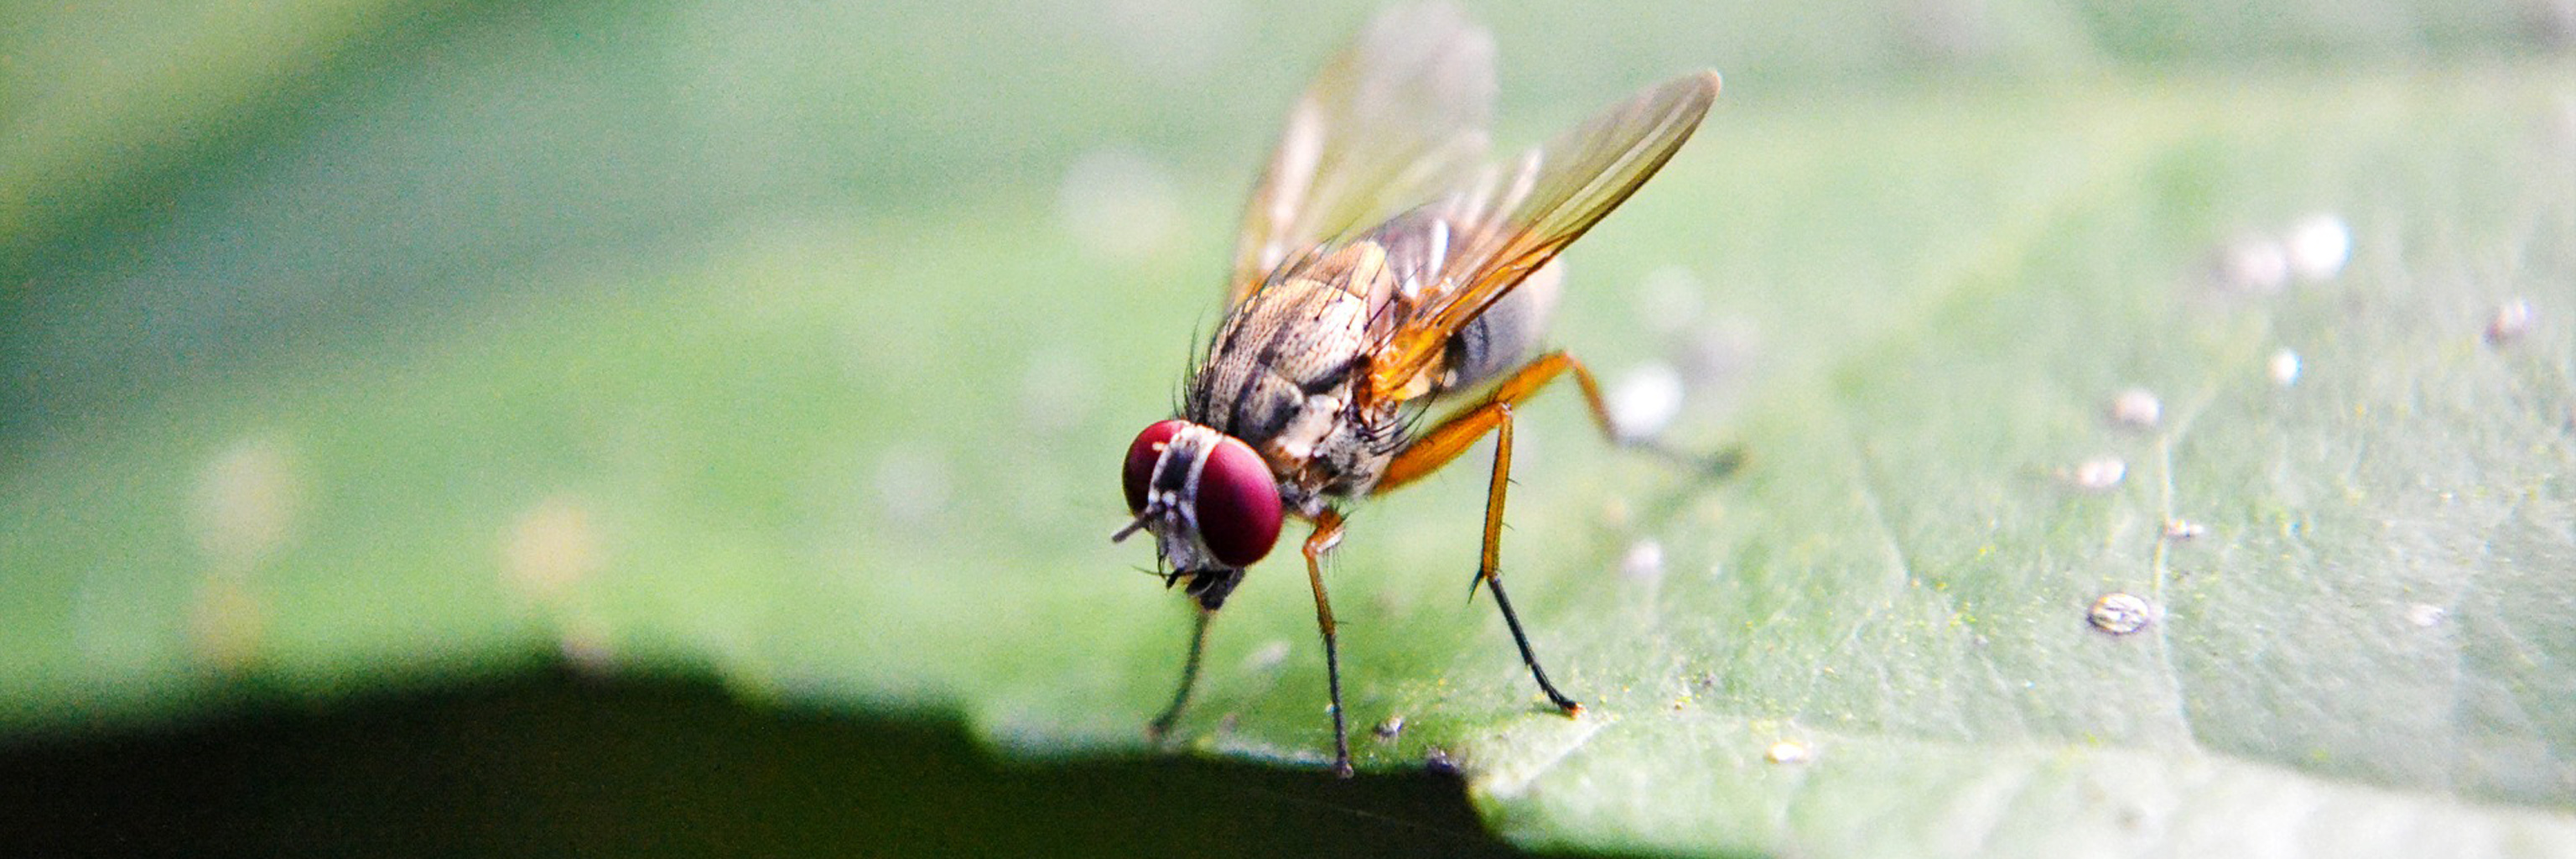 A fruit fly landing